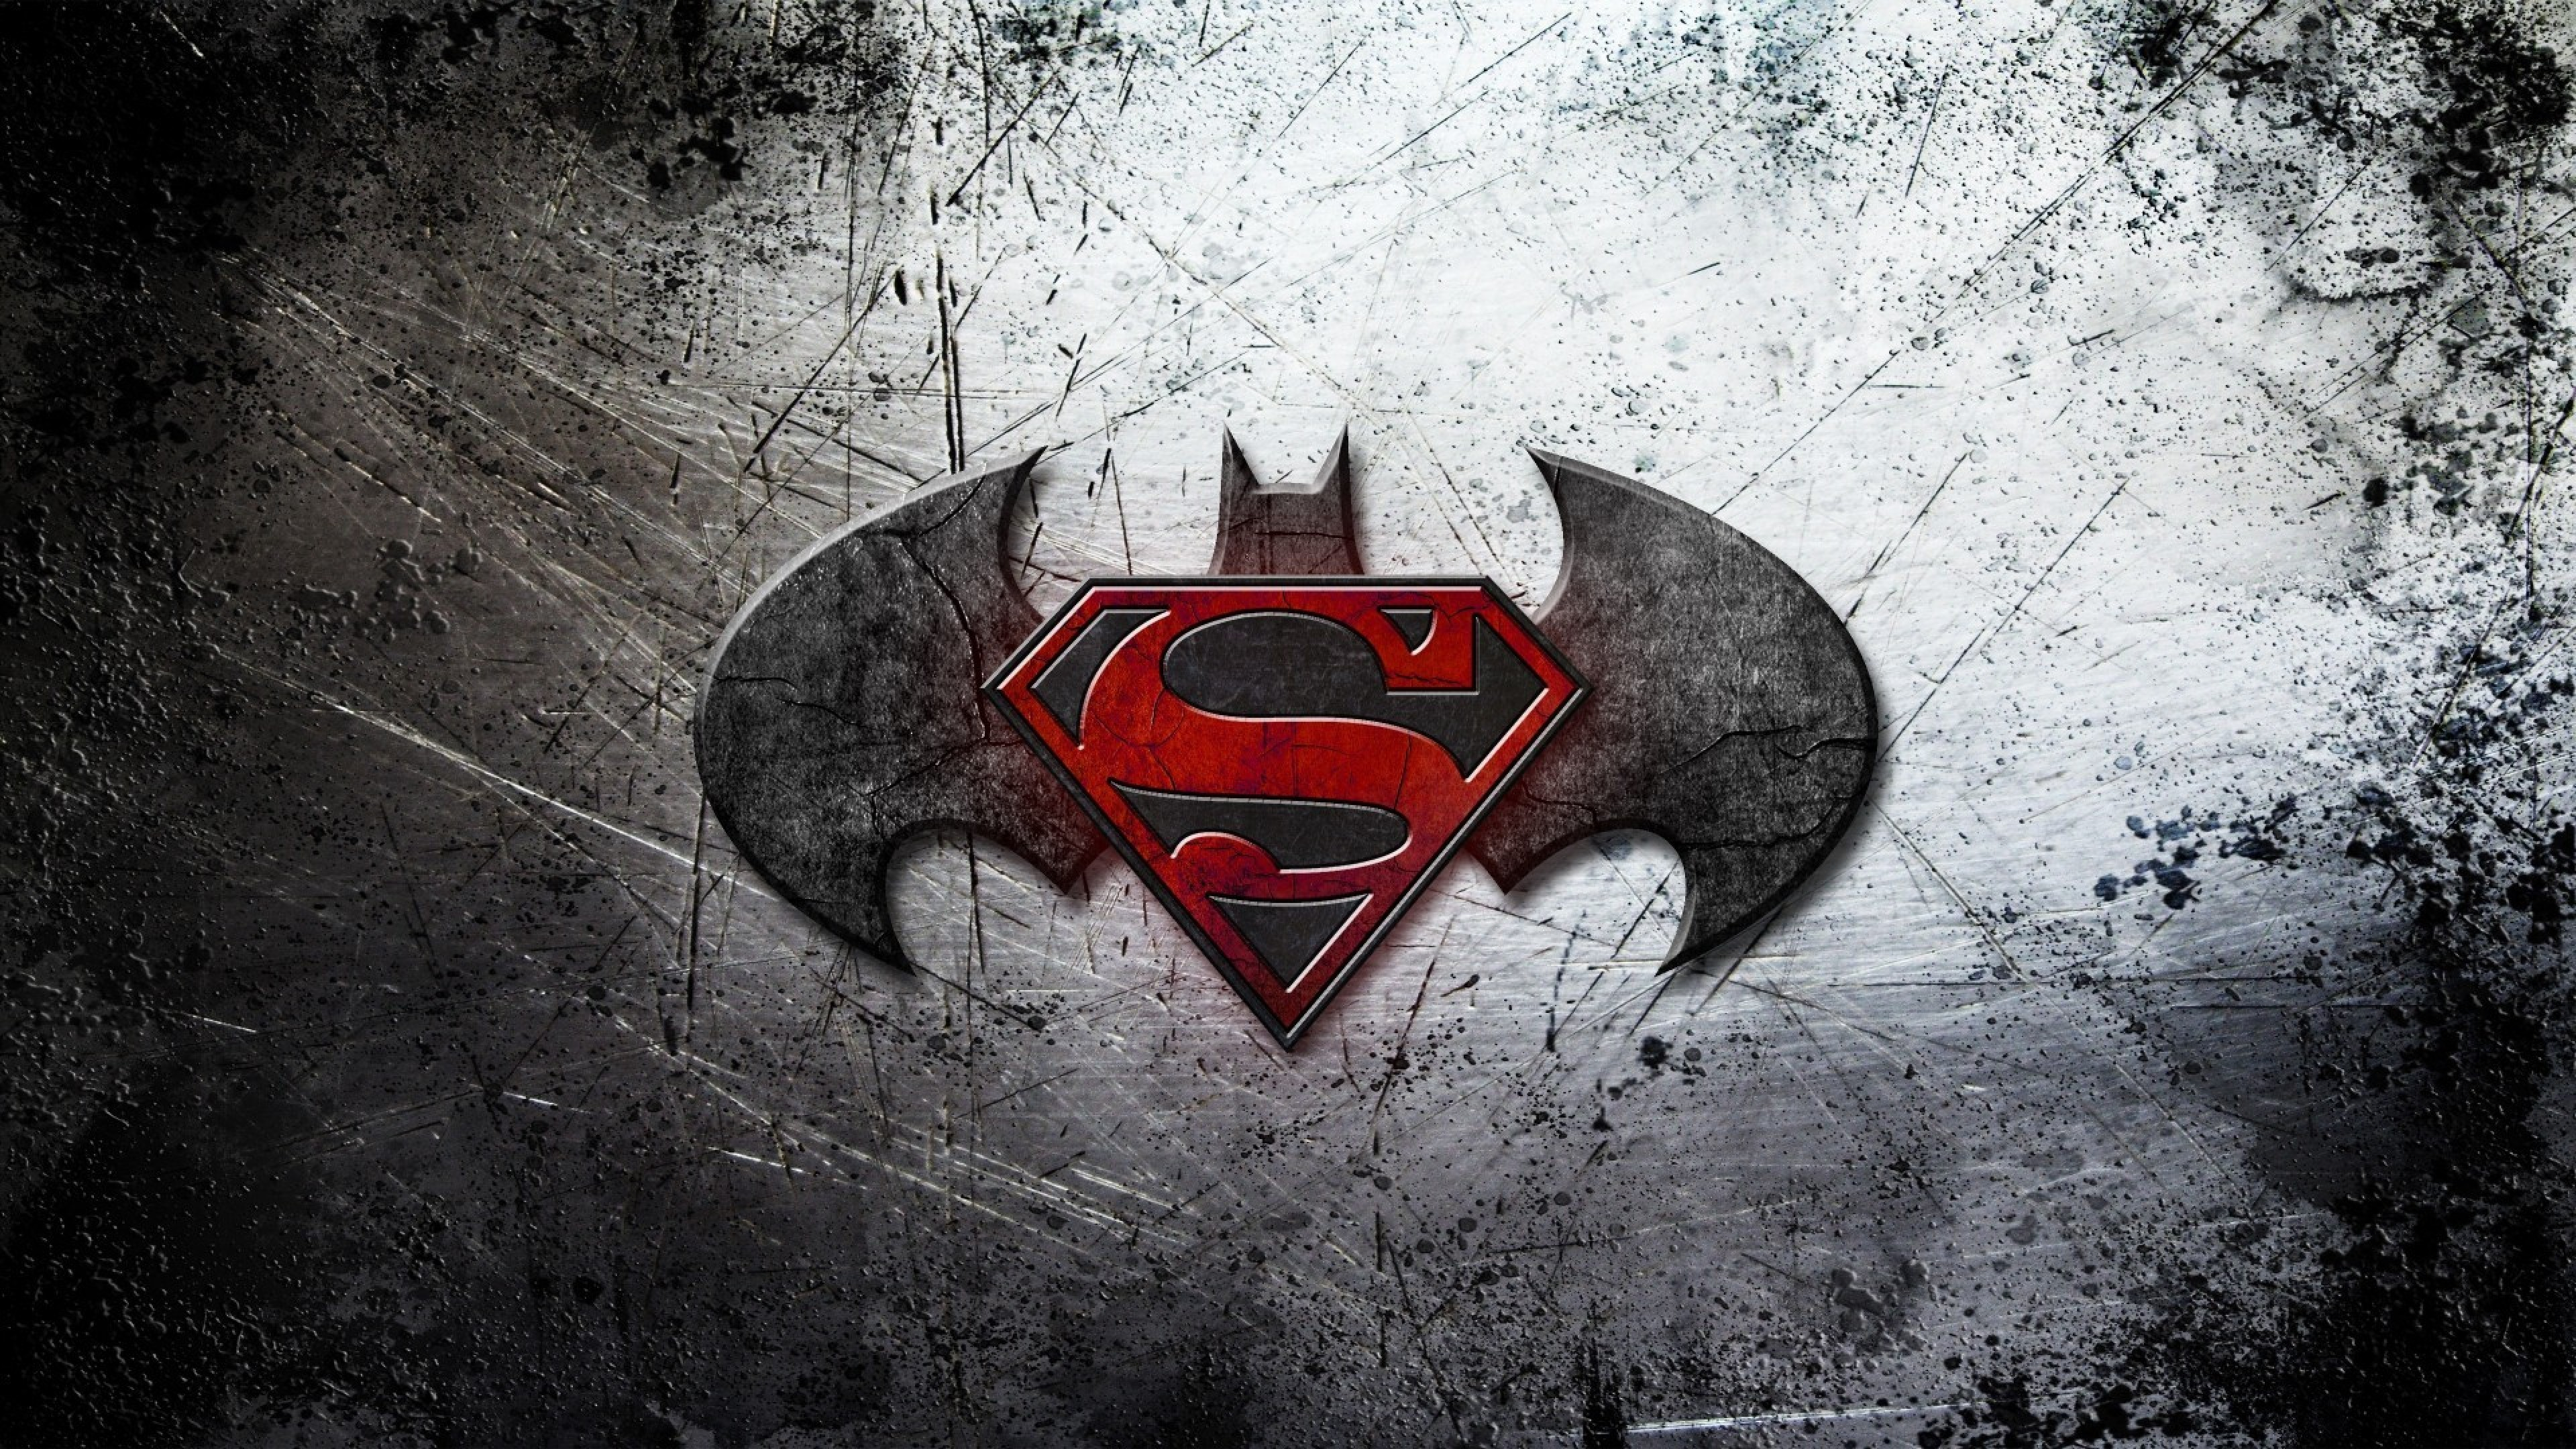 Batman vs Superman HD Wallpaper